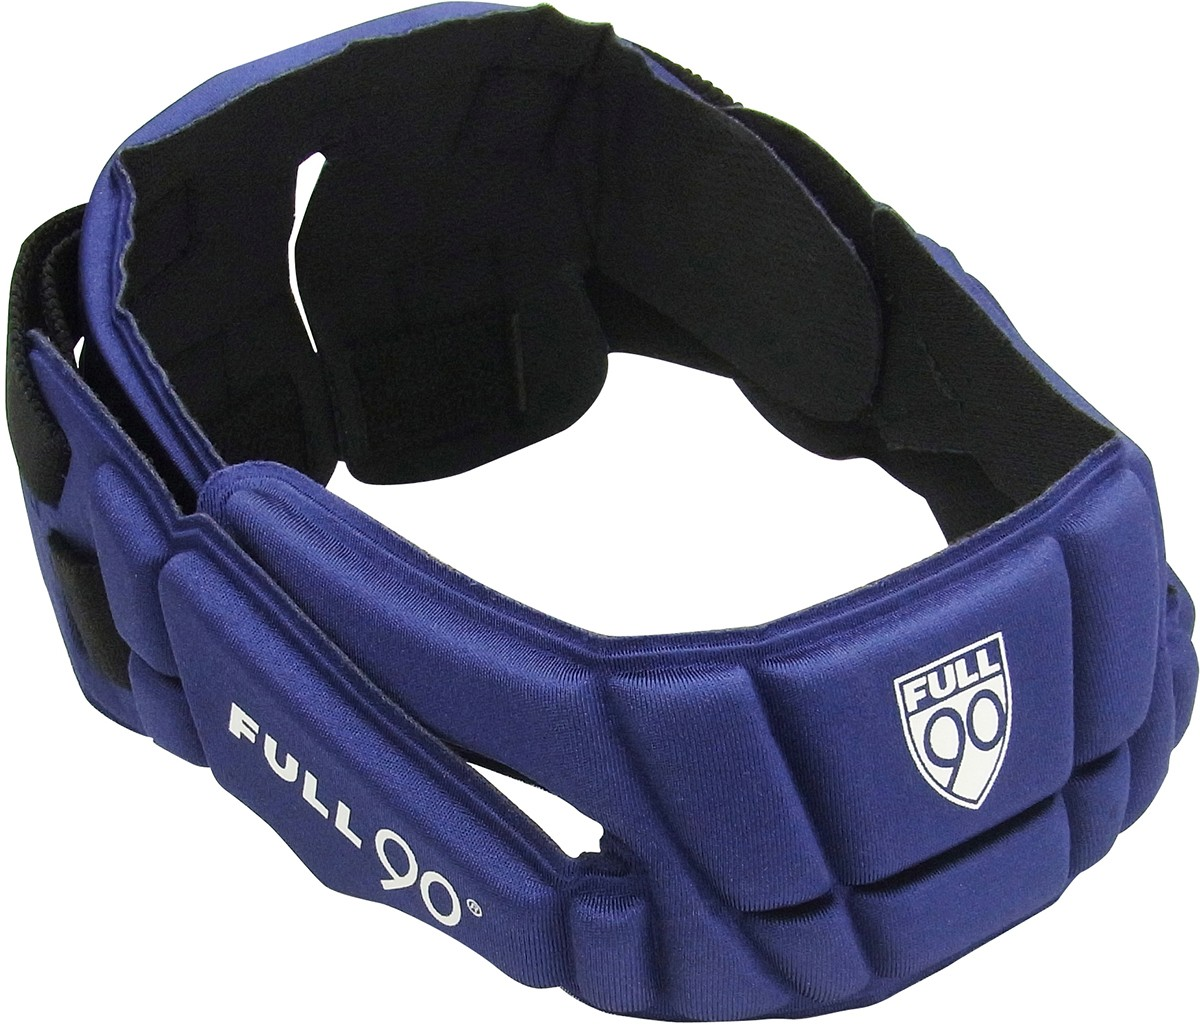 Full 90 Premier Protective Soccer Headguard  A11804